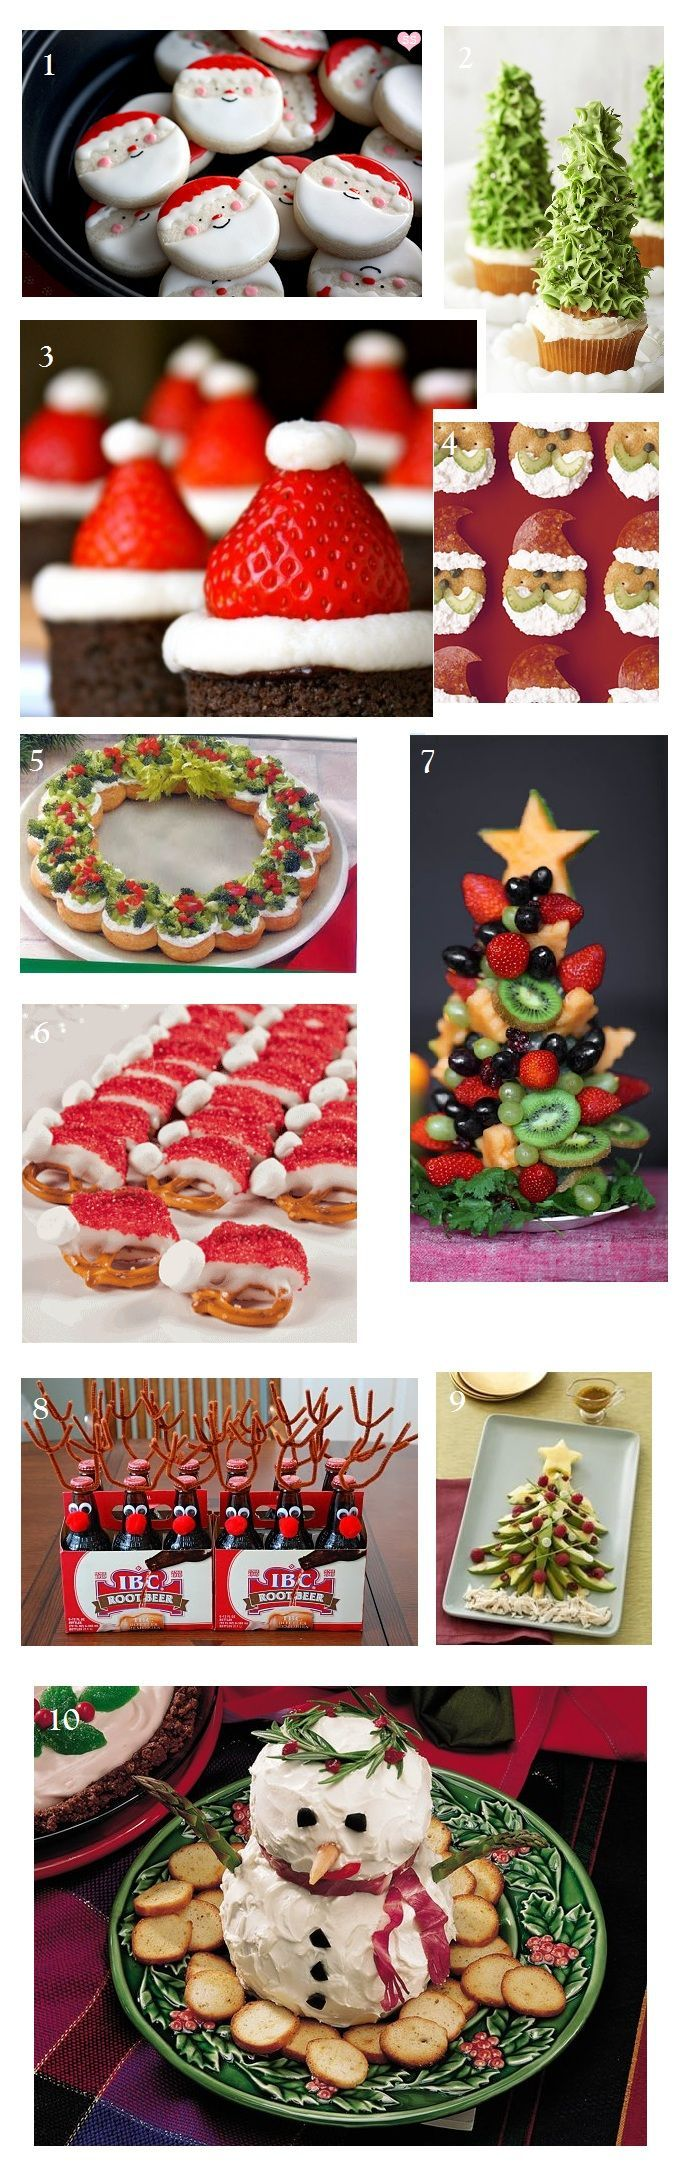 Christmas Party Food Ideas - Appetizers and Desserts